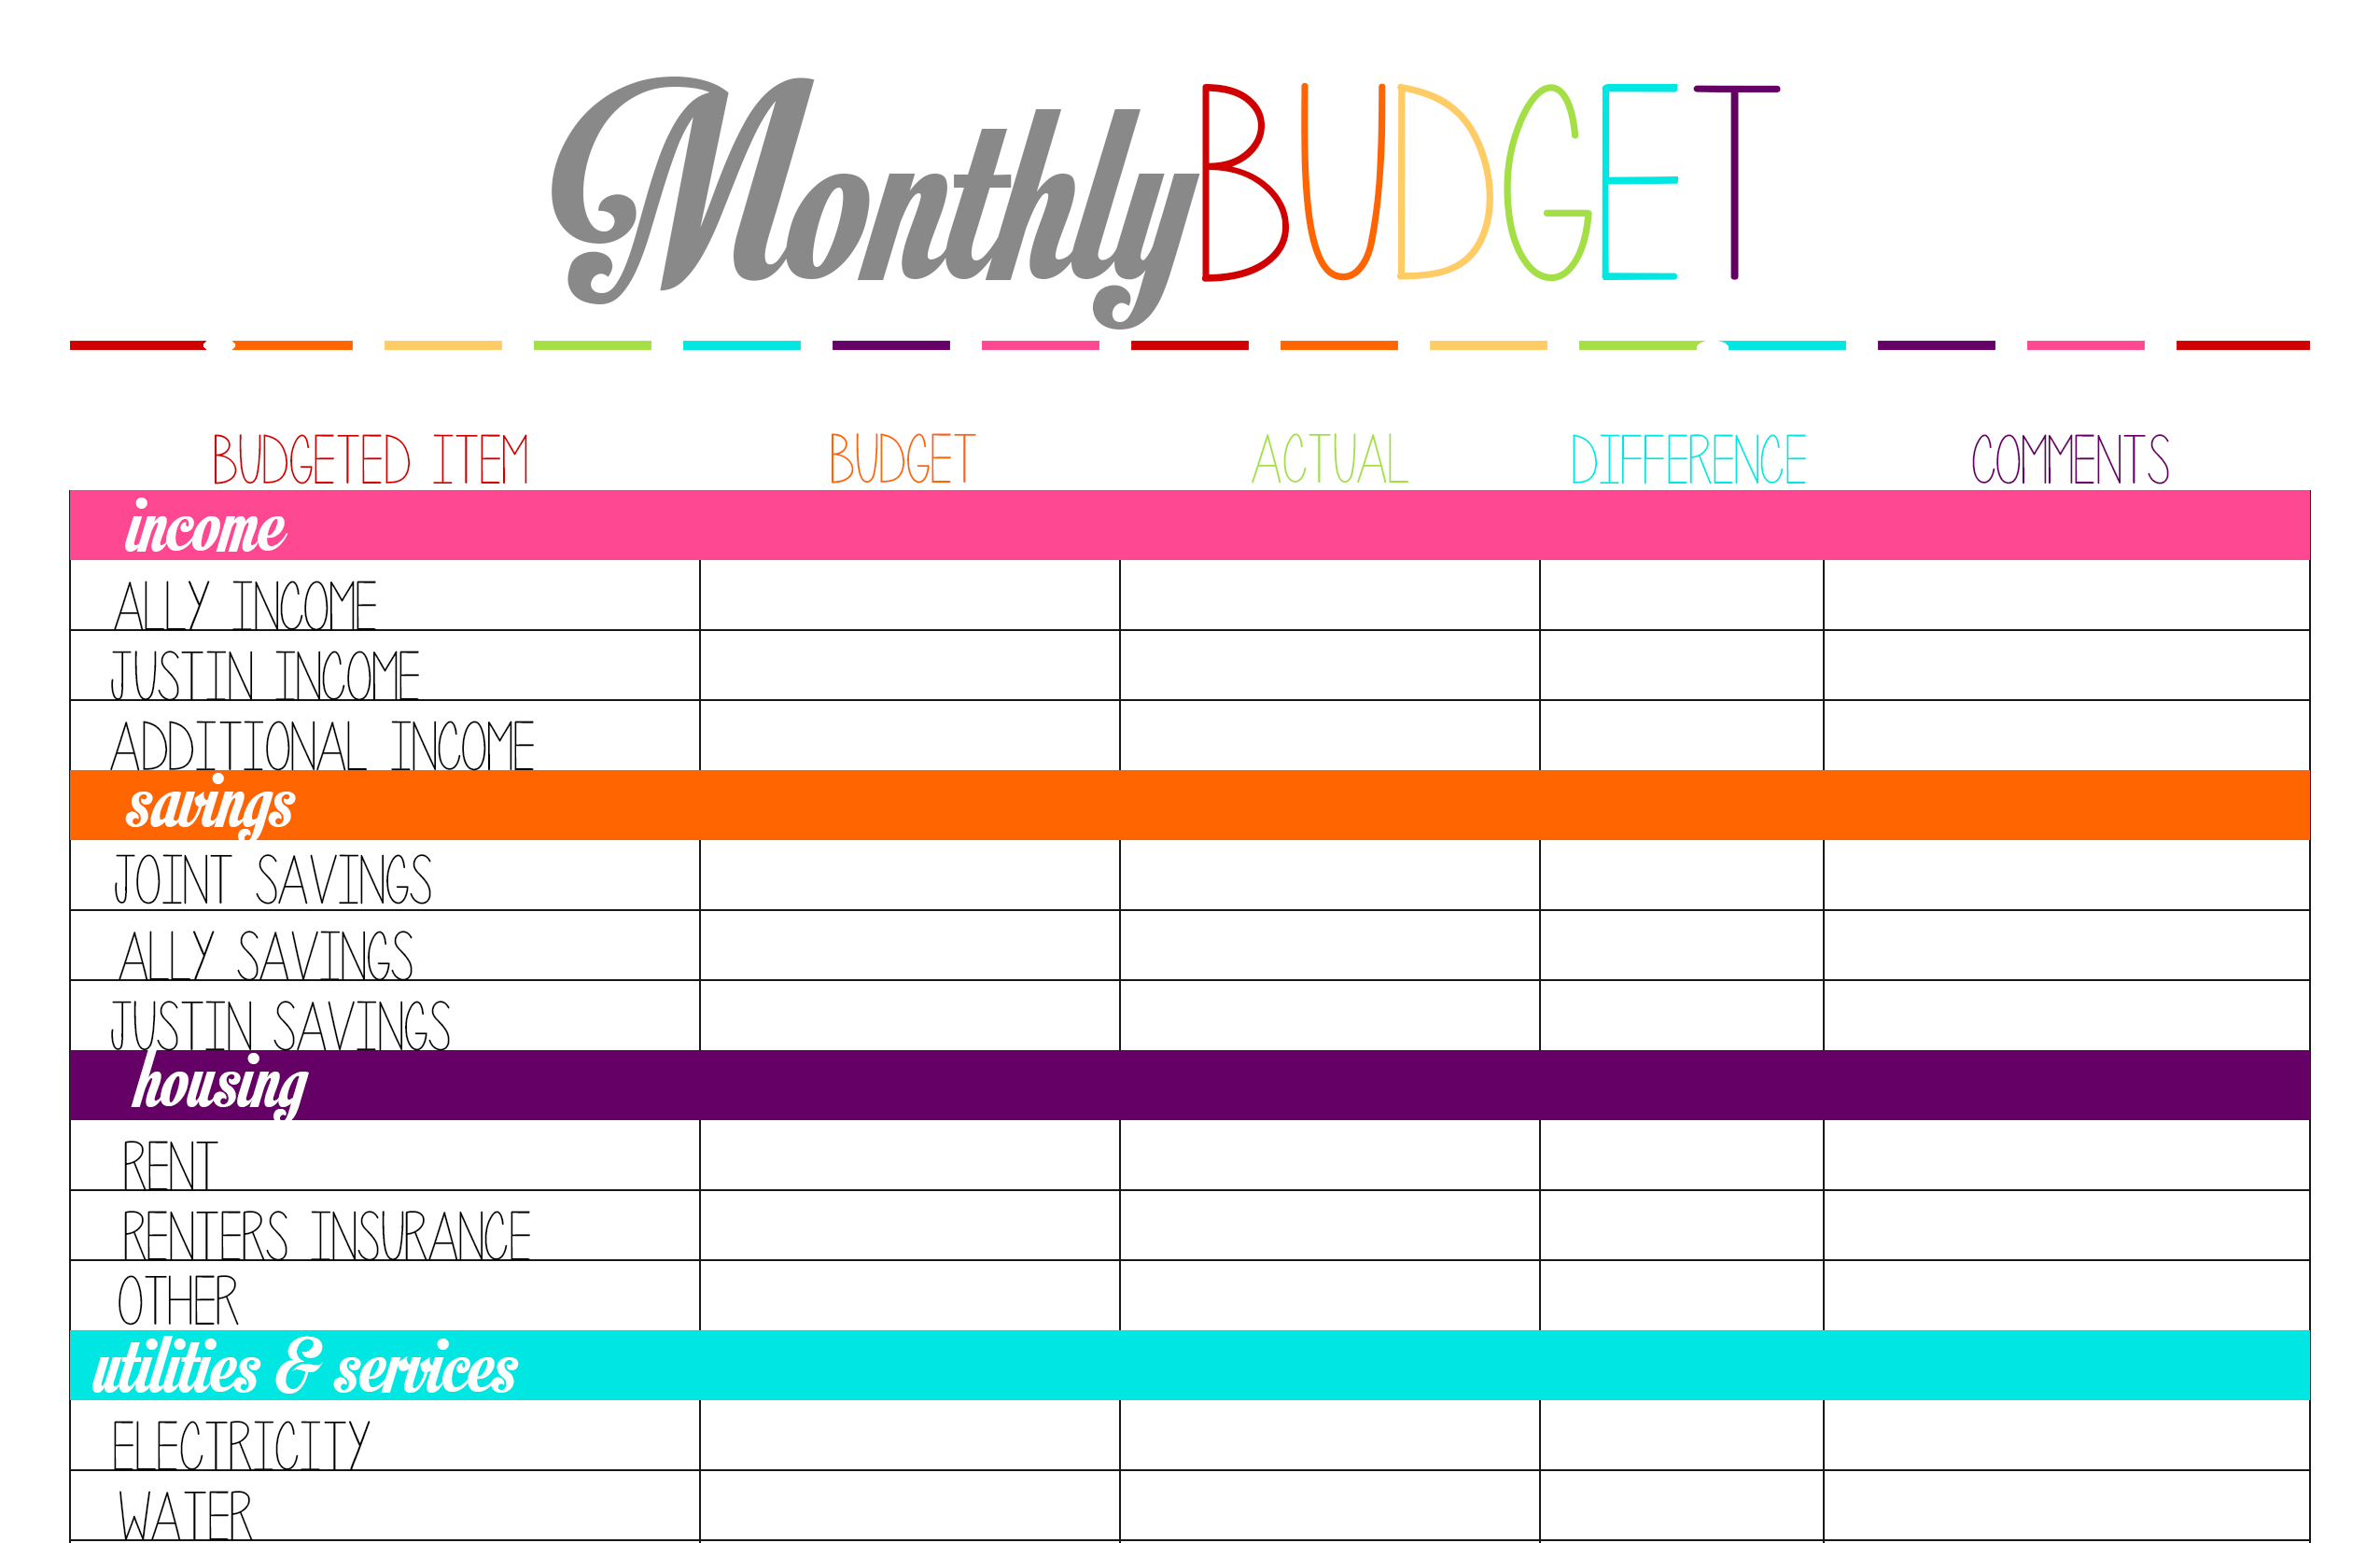 Worksheets Free Printable Budget Worksheet monthly budget worksheet printable thebridgesummit co free worksheets fiercebad worksheet